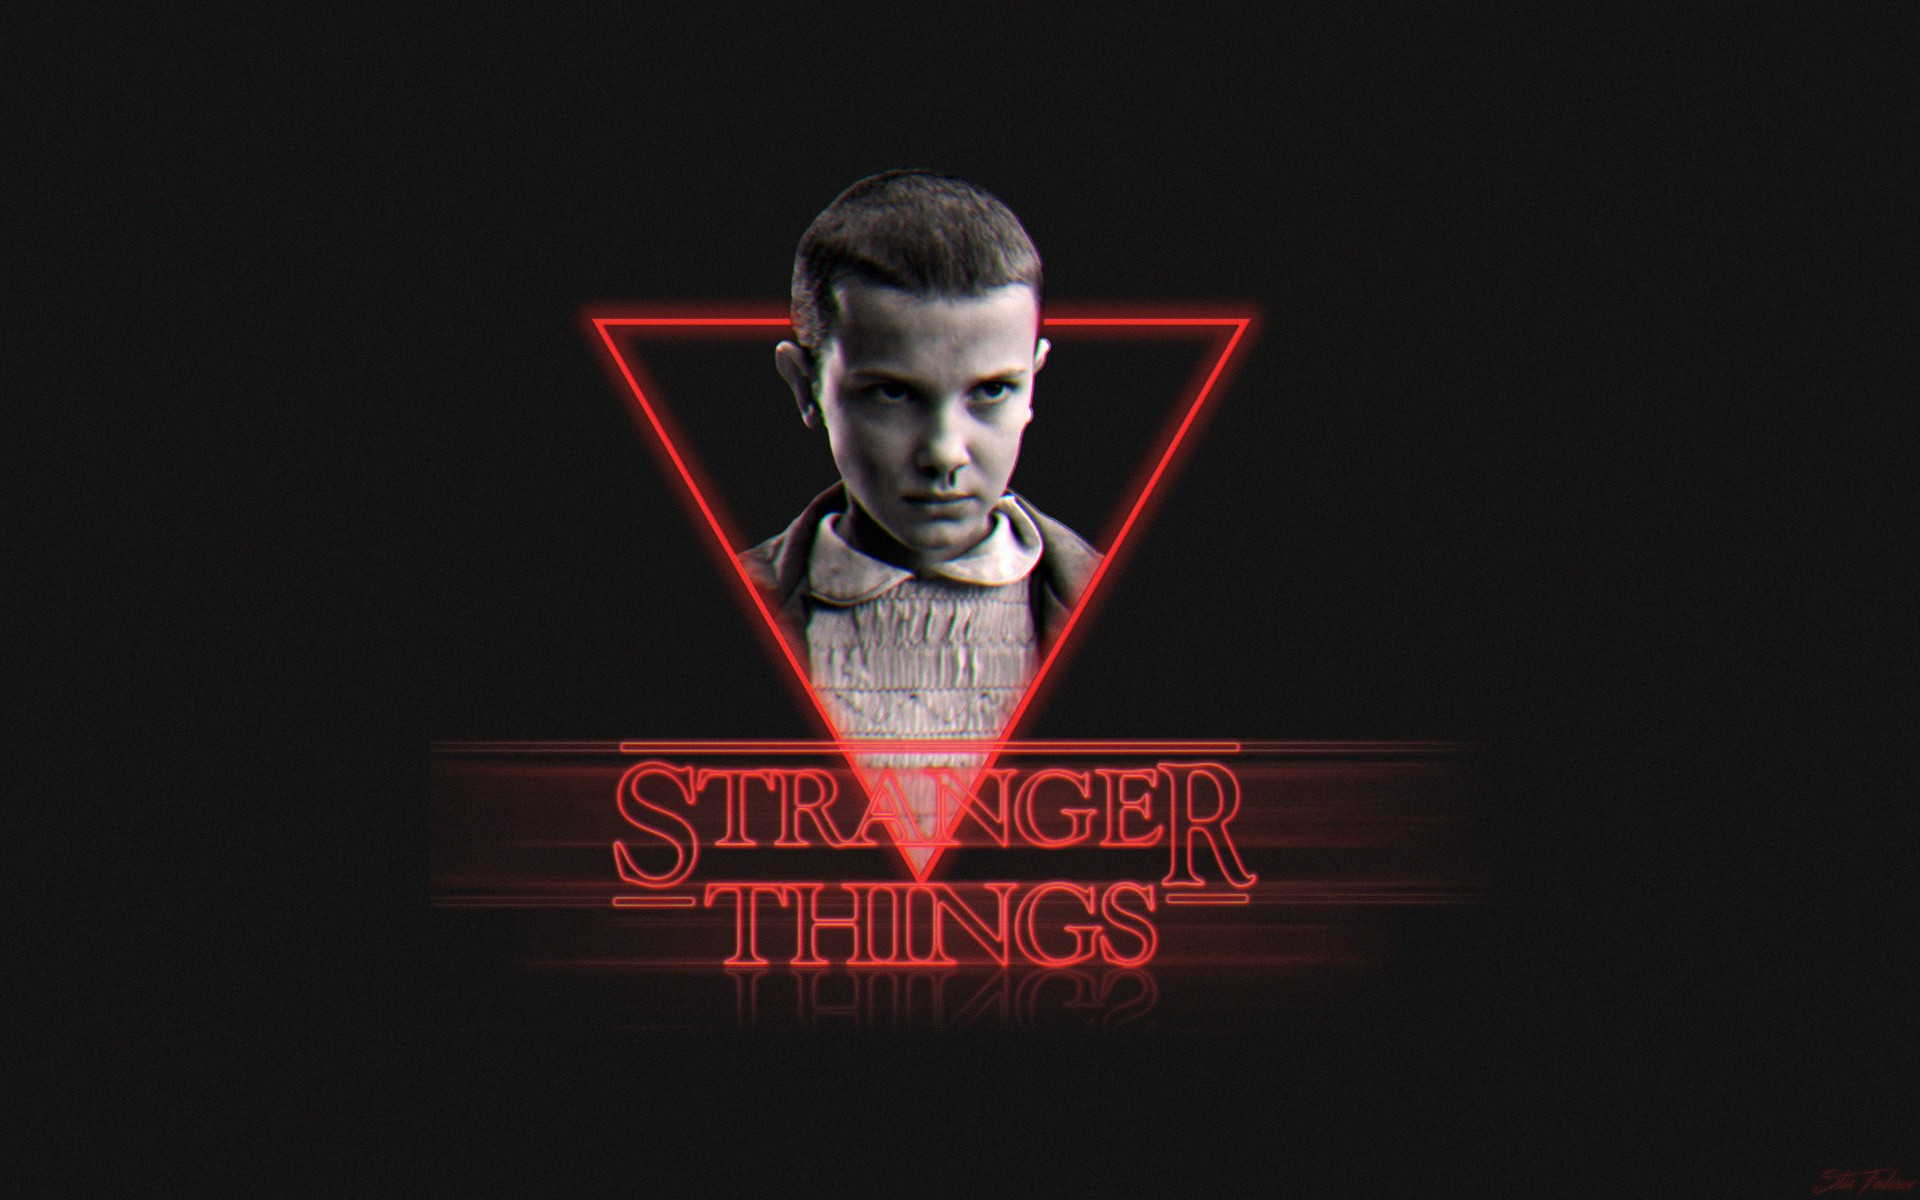 Stranger Things HD Wallpaper | Background Image | 1920x1200 | ID:879362 - Wallpaper Abyss